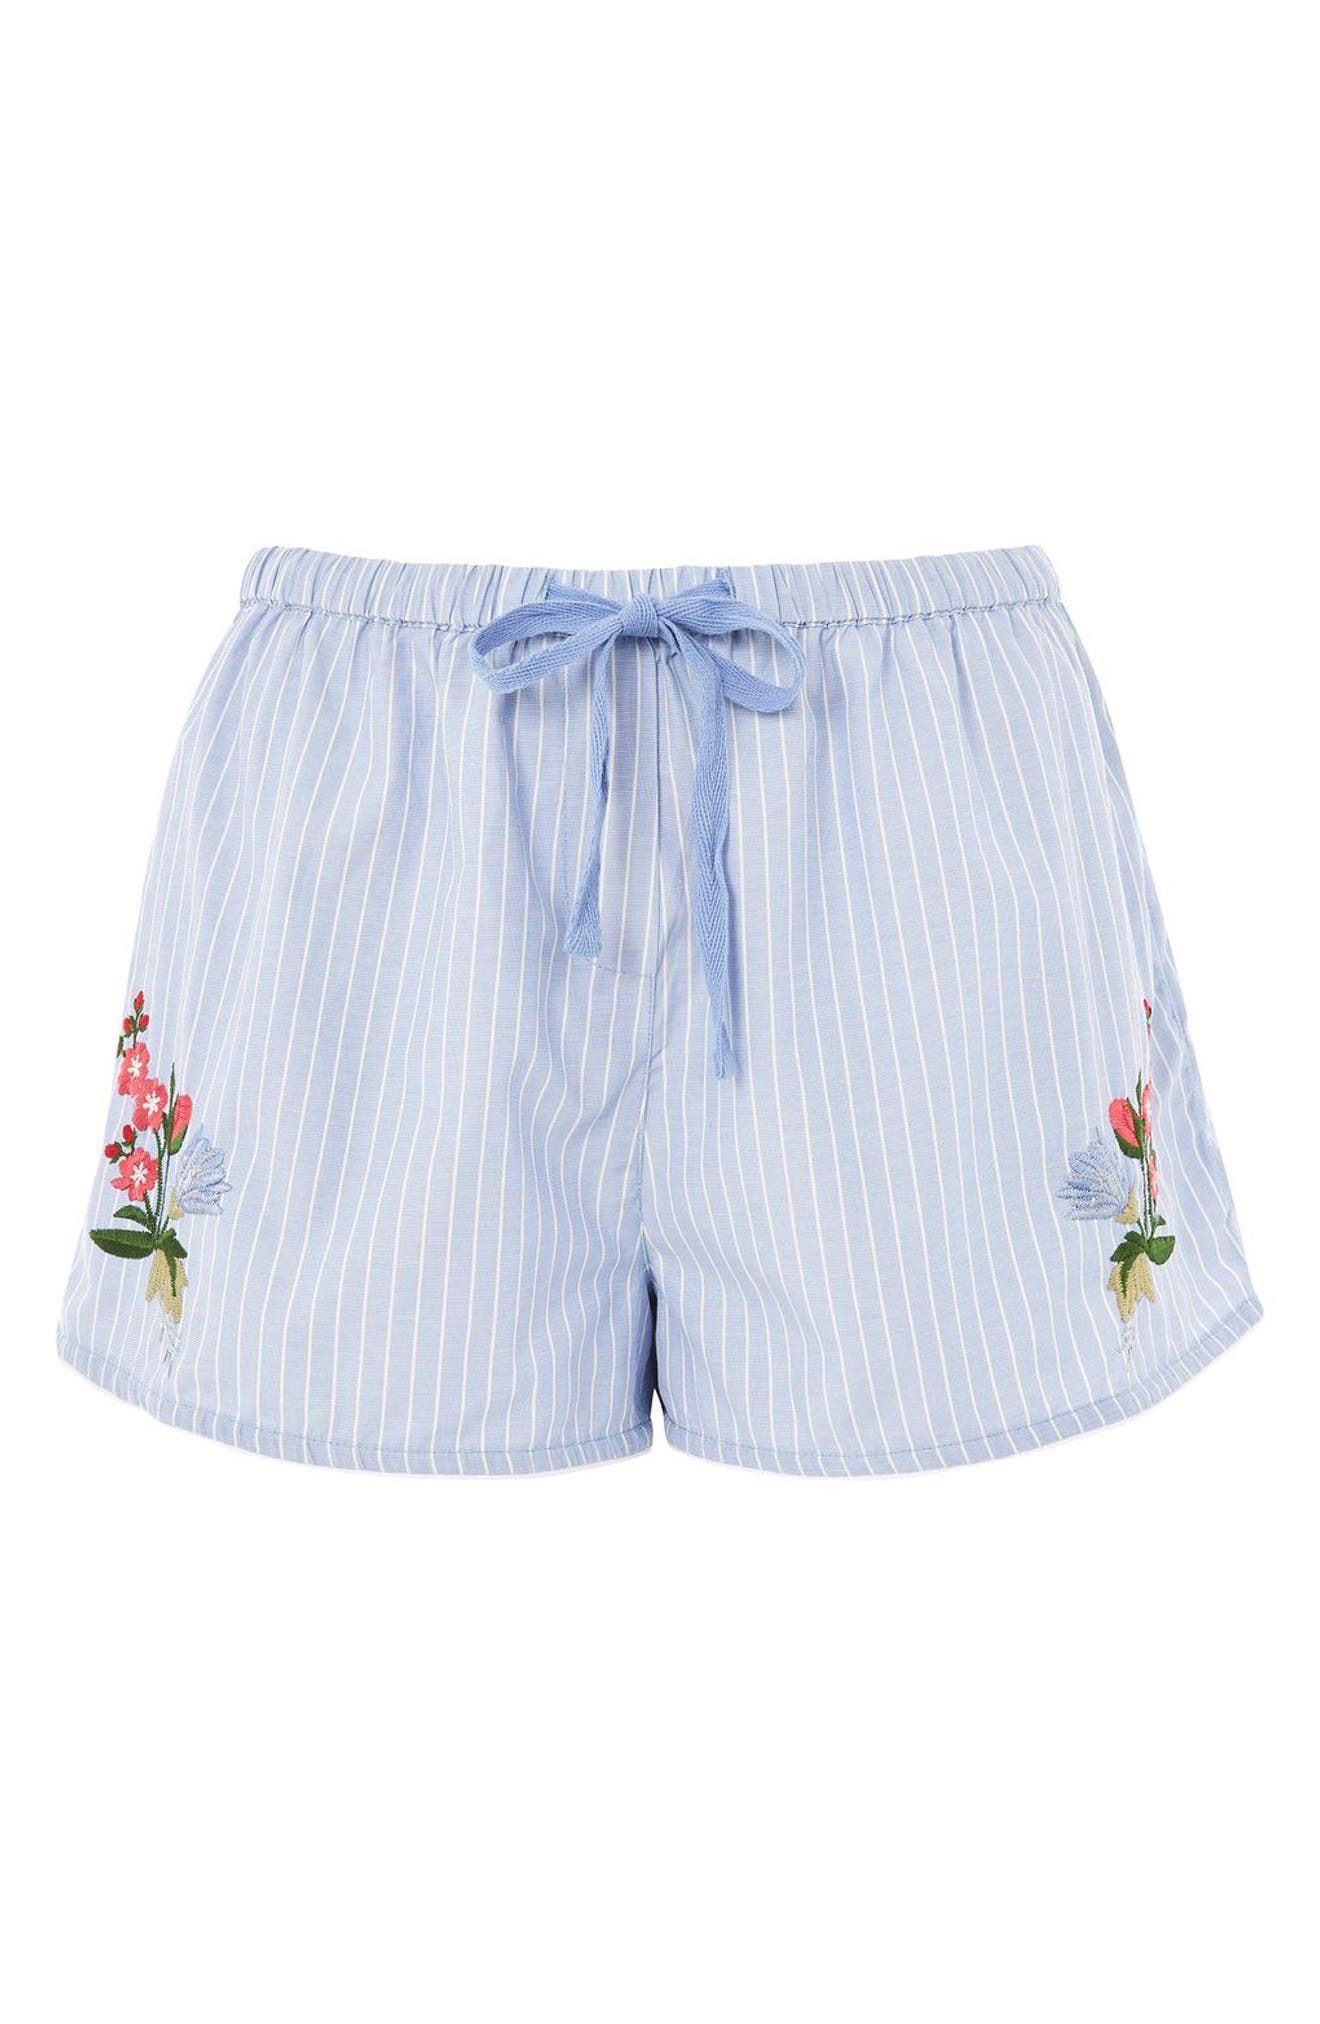 Topshop Embroidered Lounge Shorts